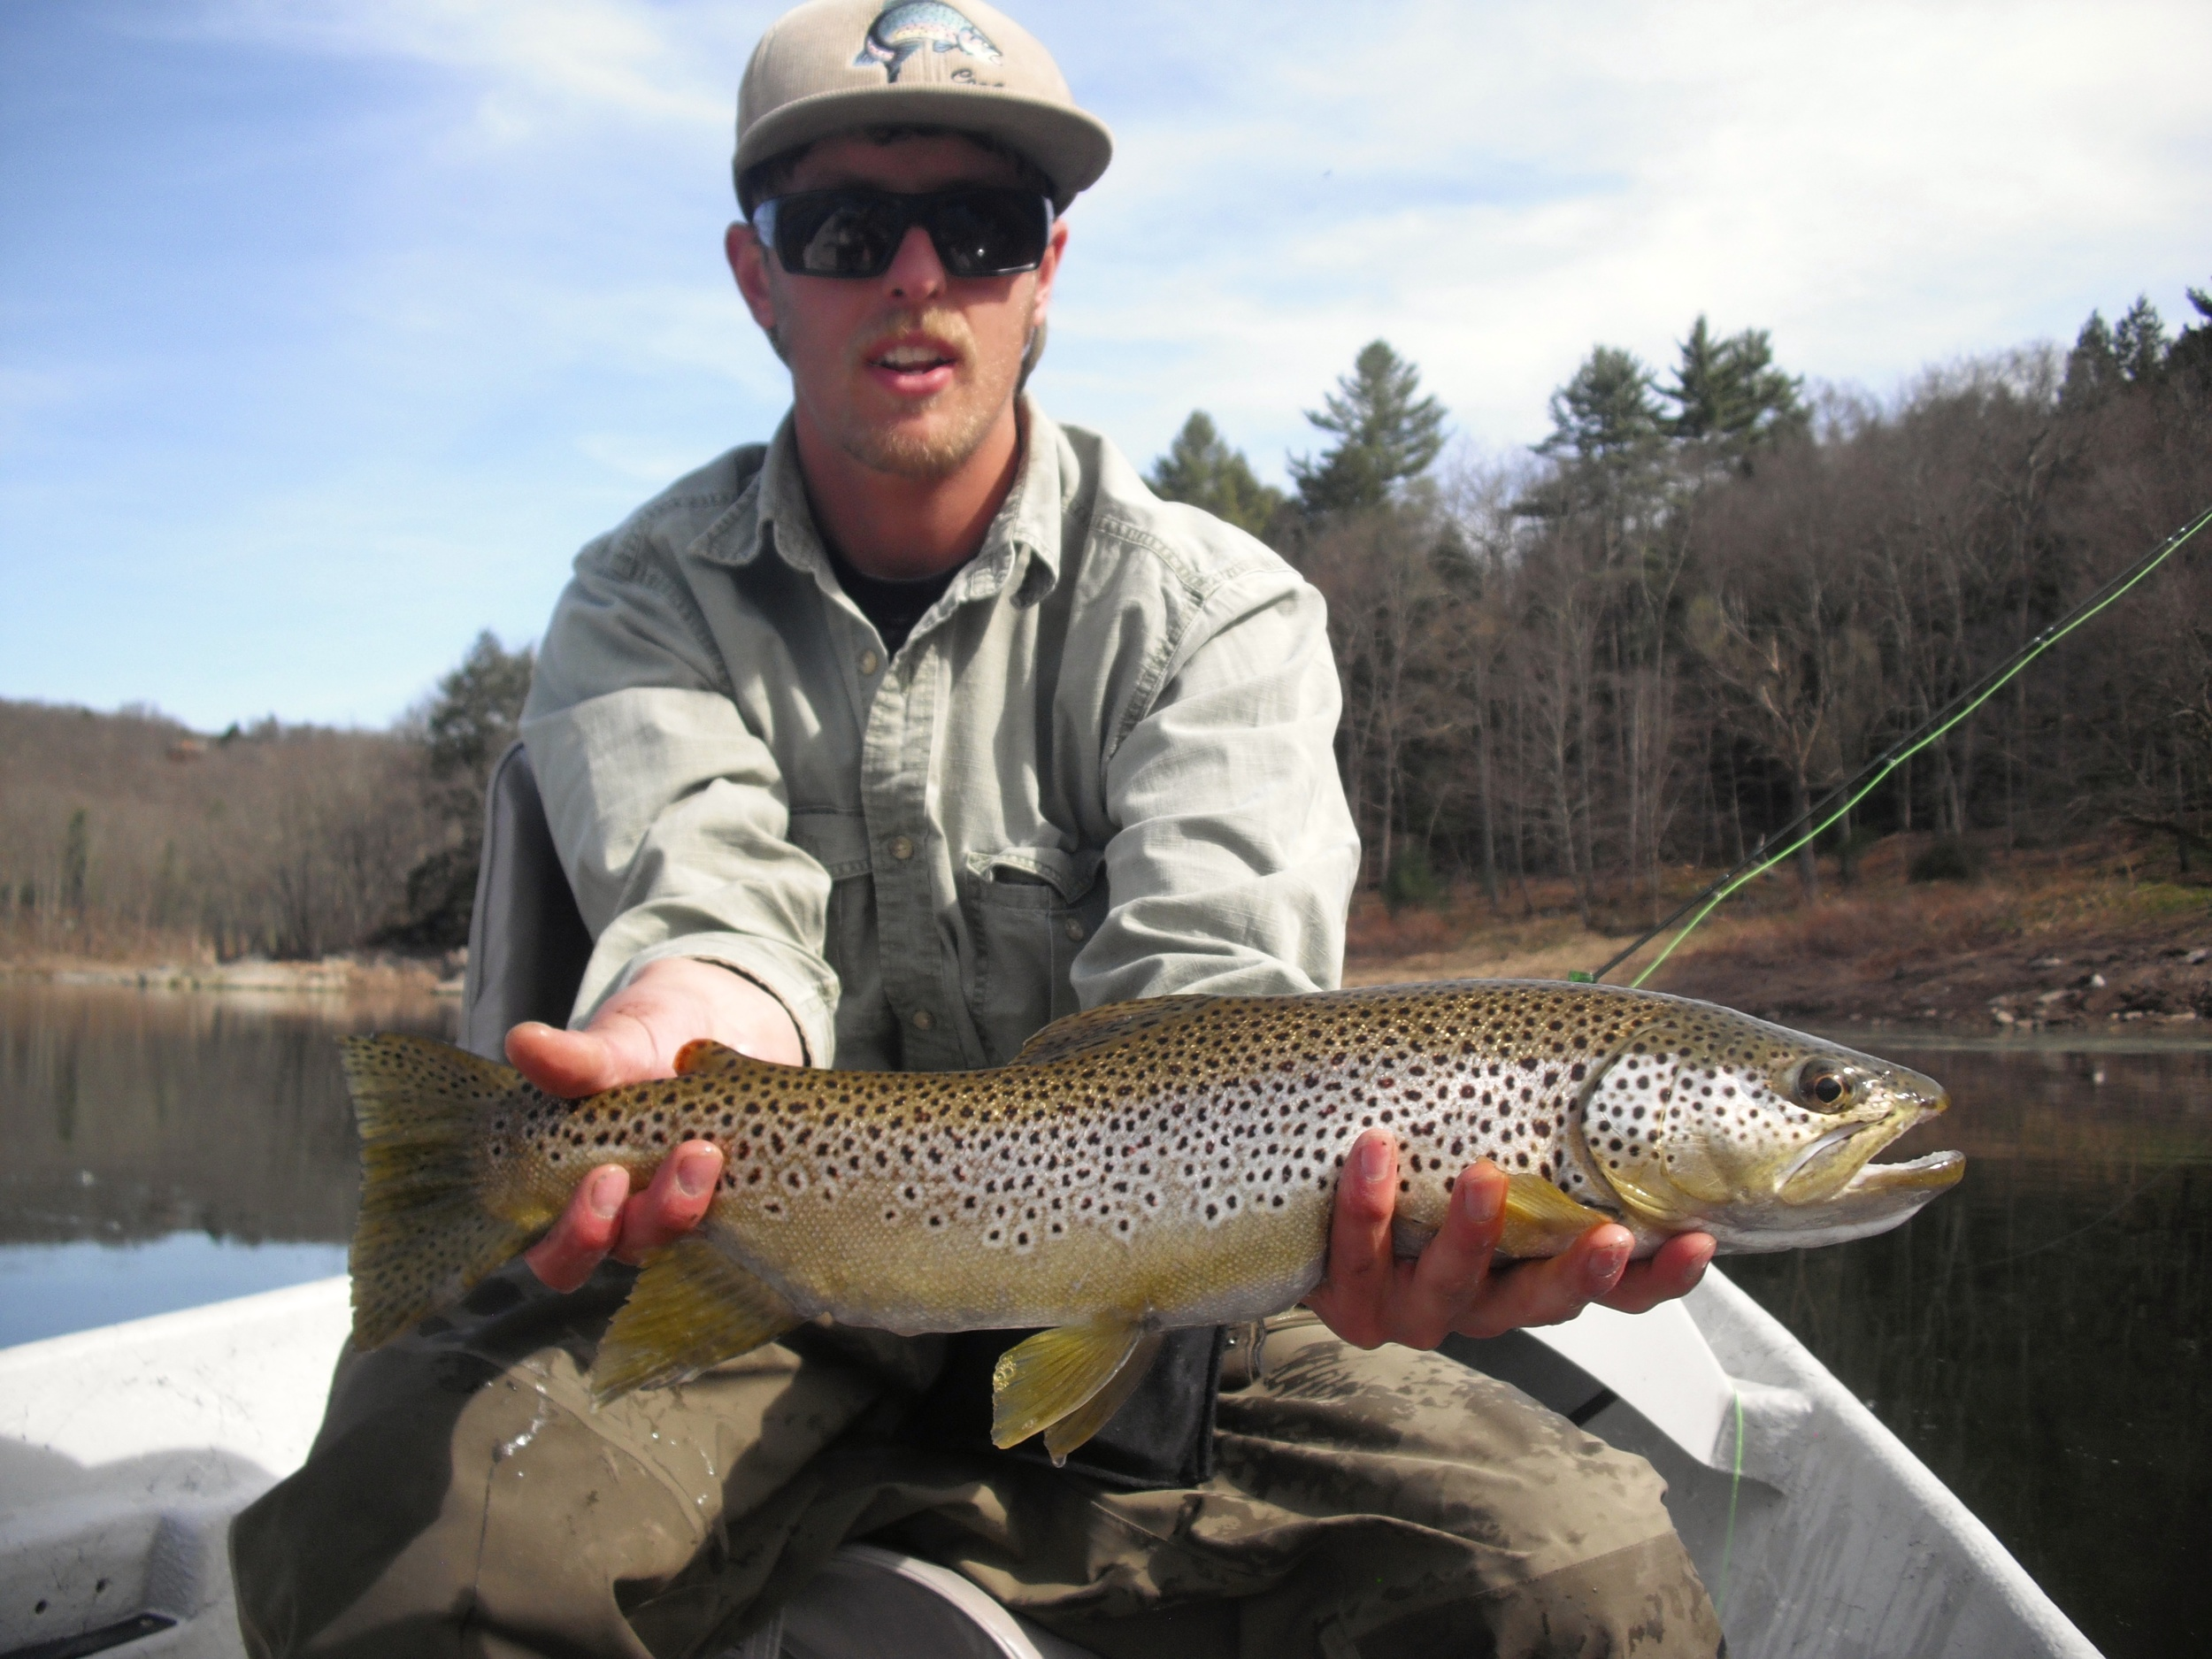 Fly fishing for Brown Trout on the Delaware River